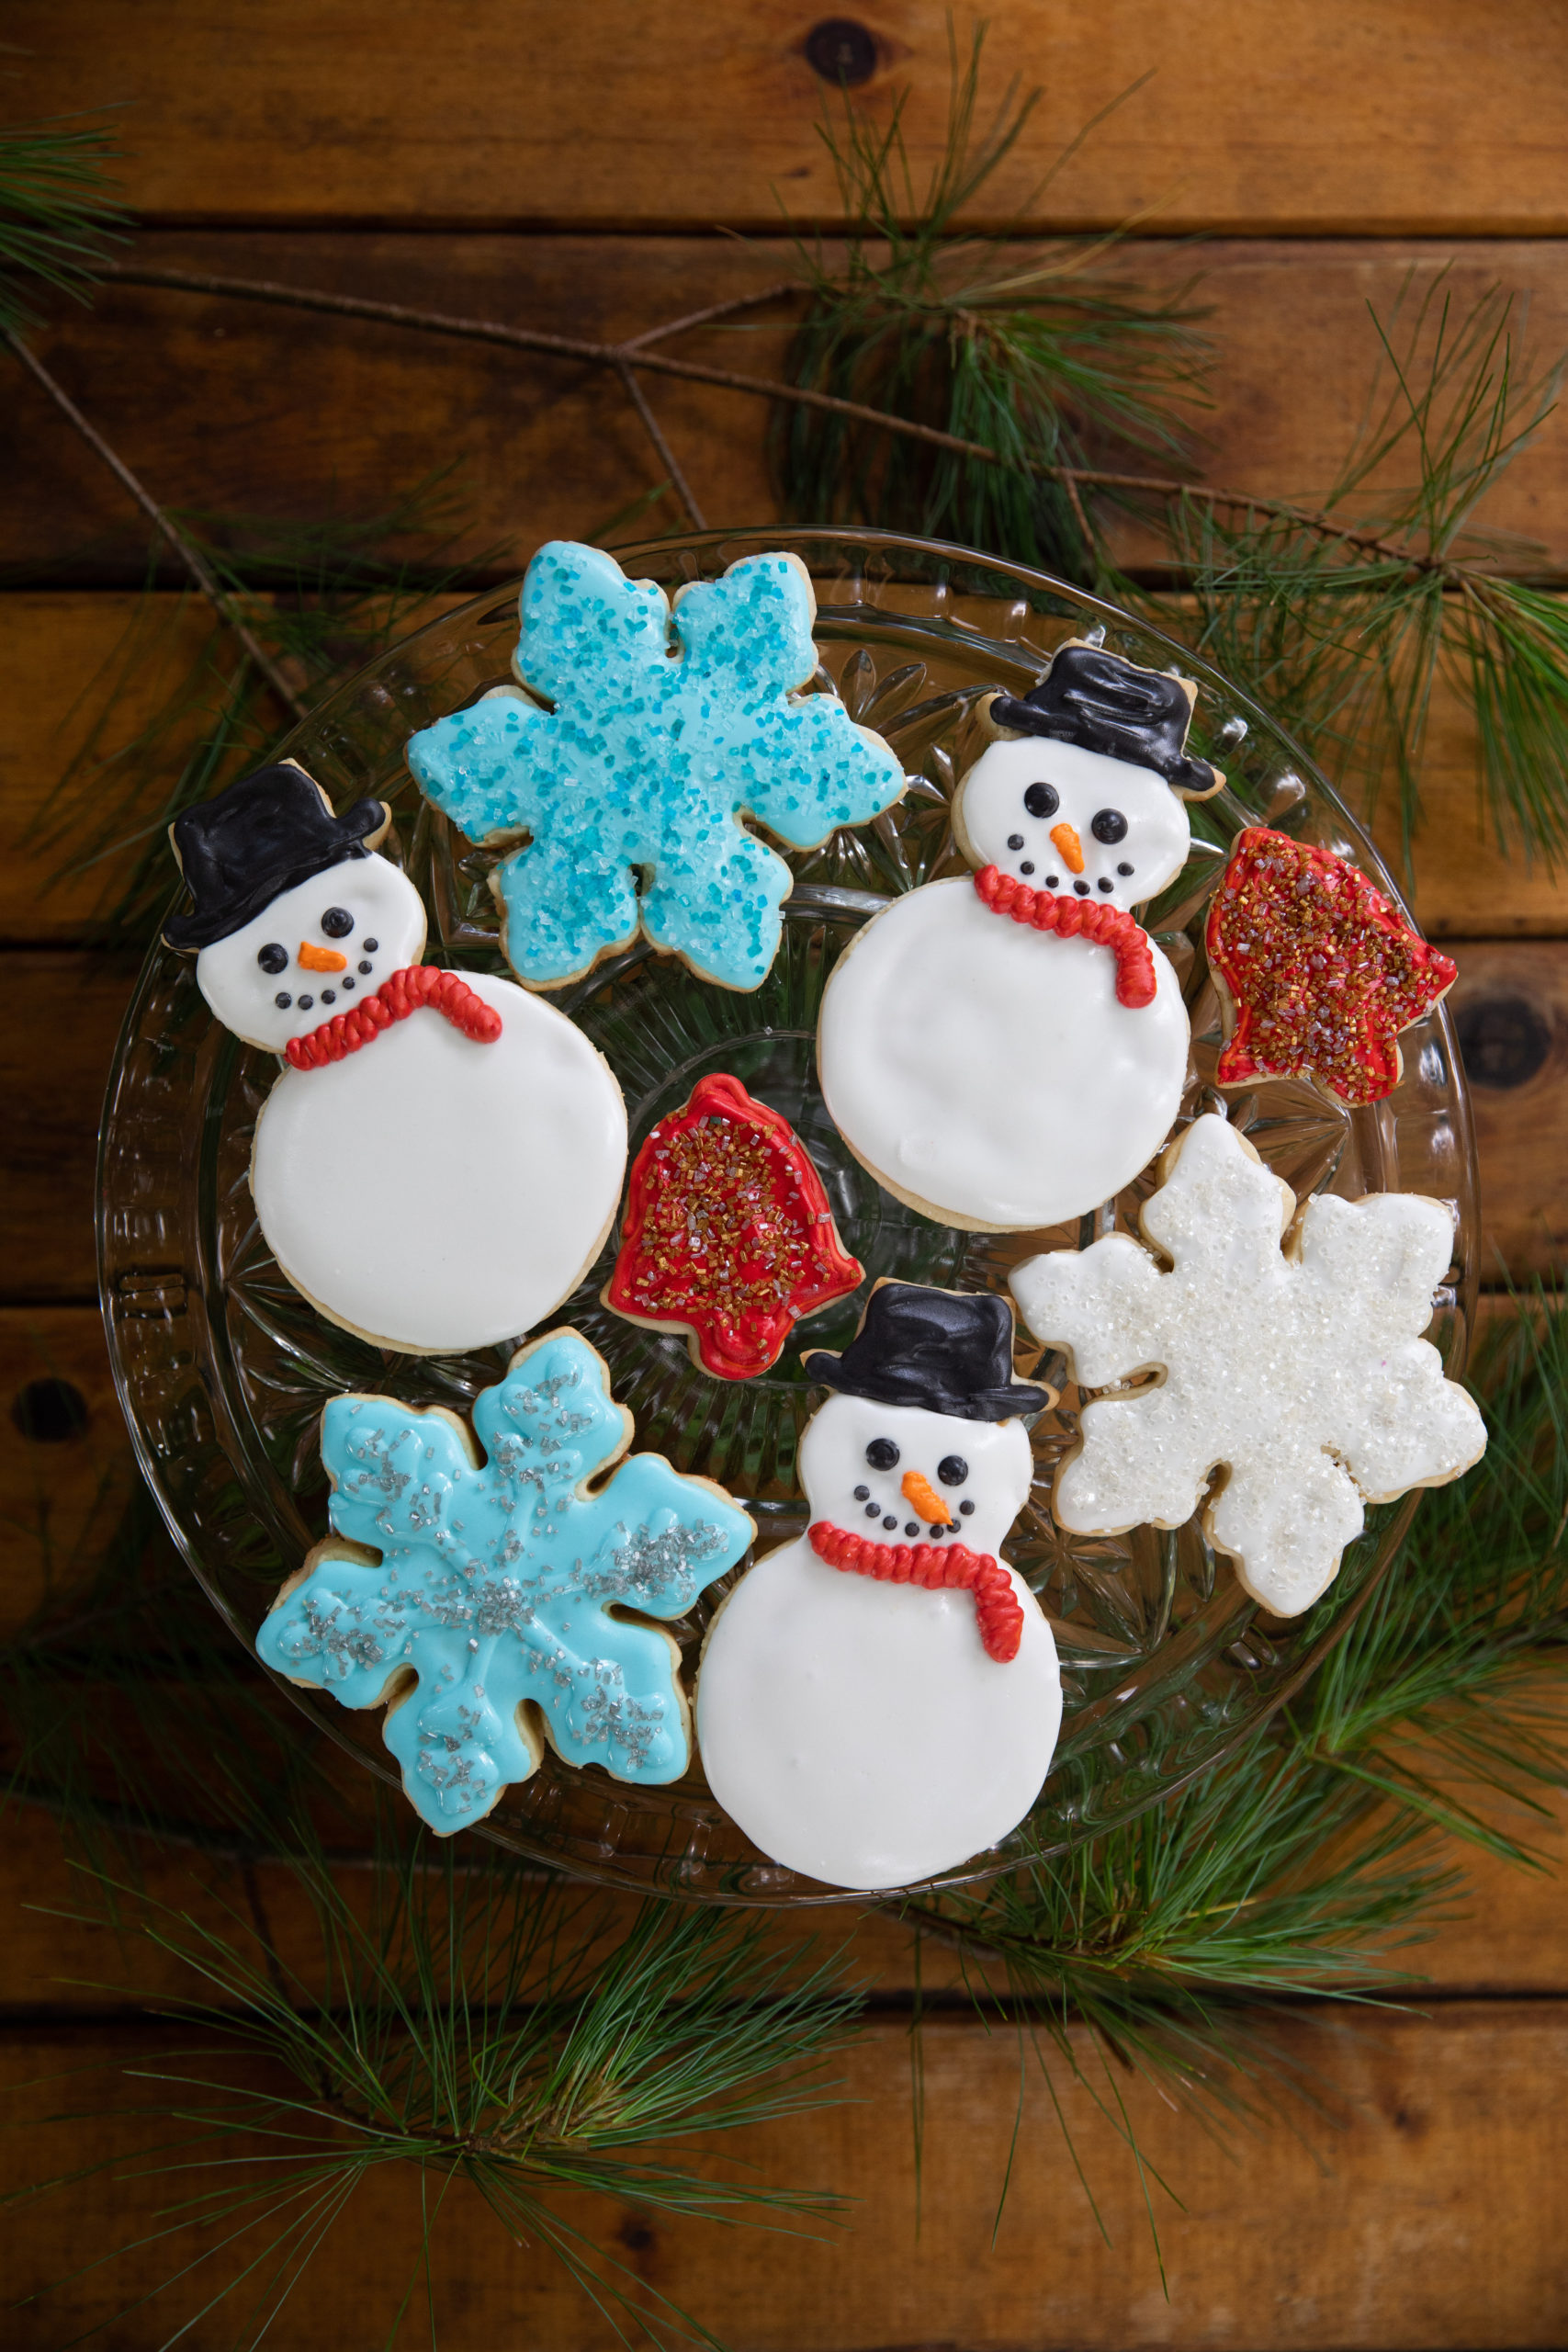 Festive sugar cookies from the Loaves and Fishes Farm Series of cookbooks.